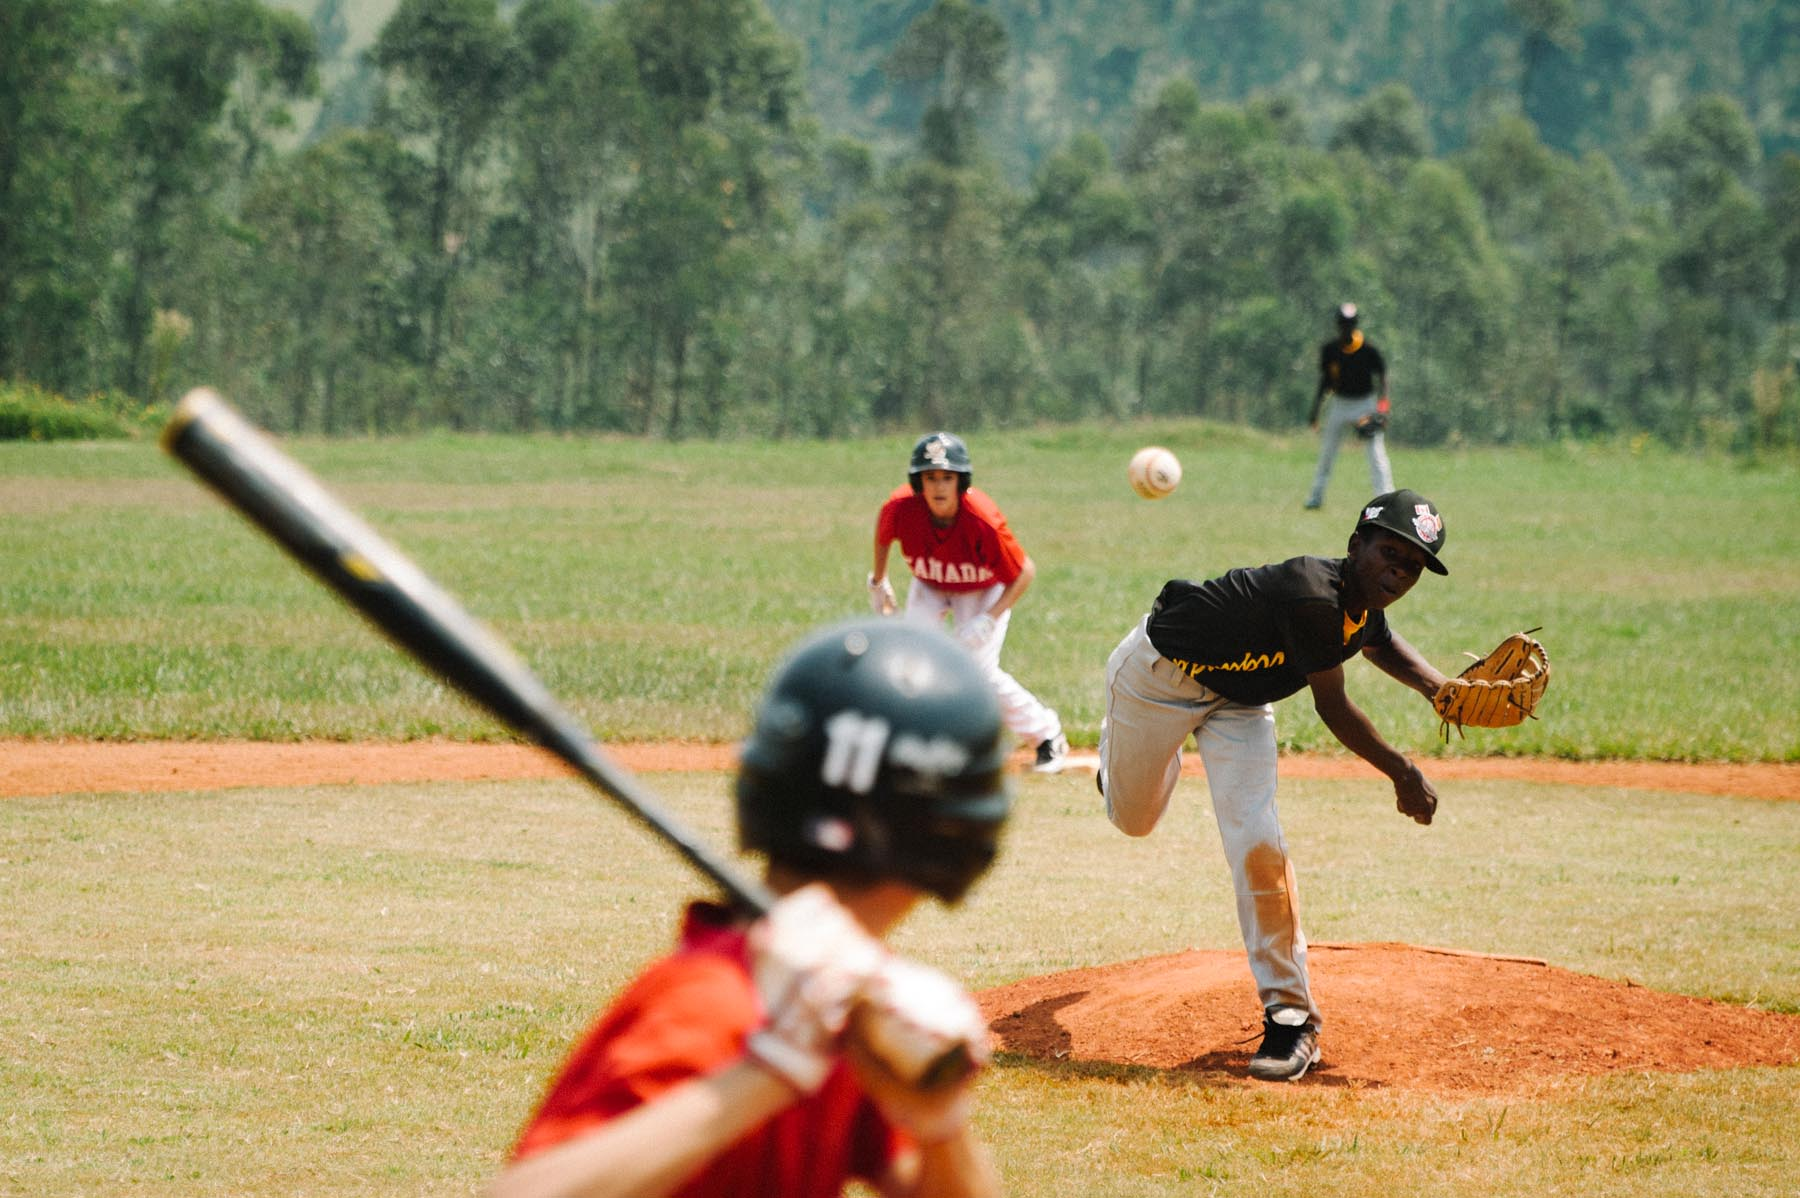 HKP-UgandaBaseball-Day4-4683.jpg